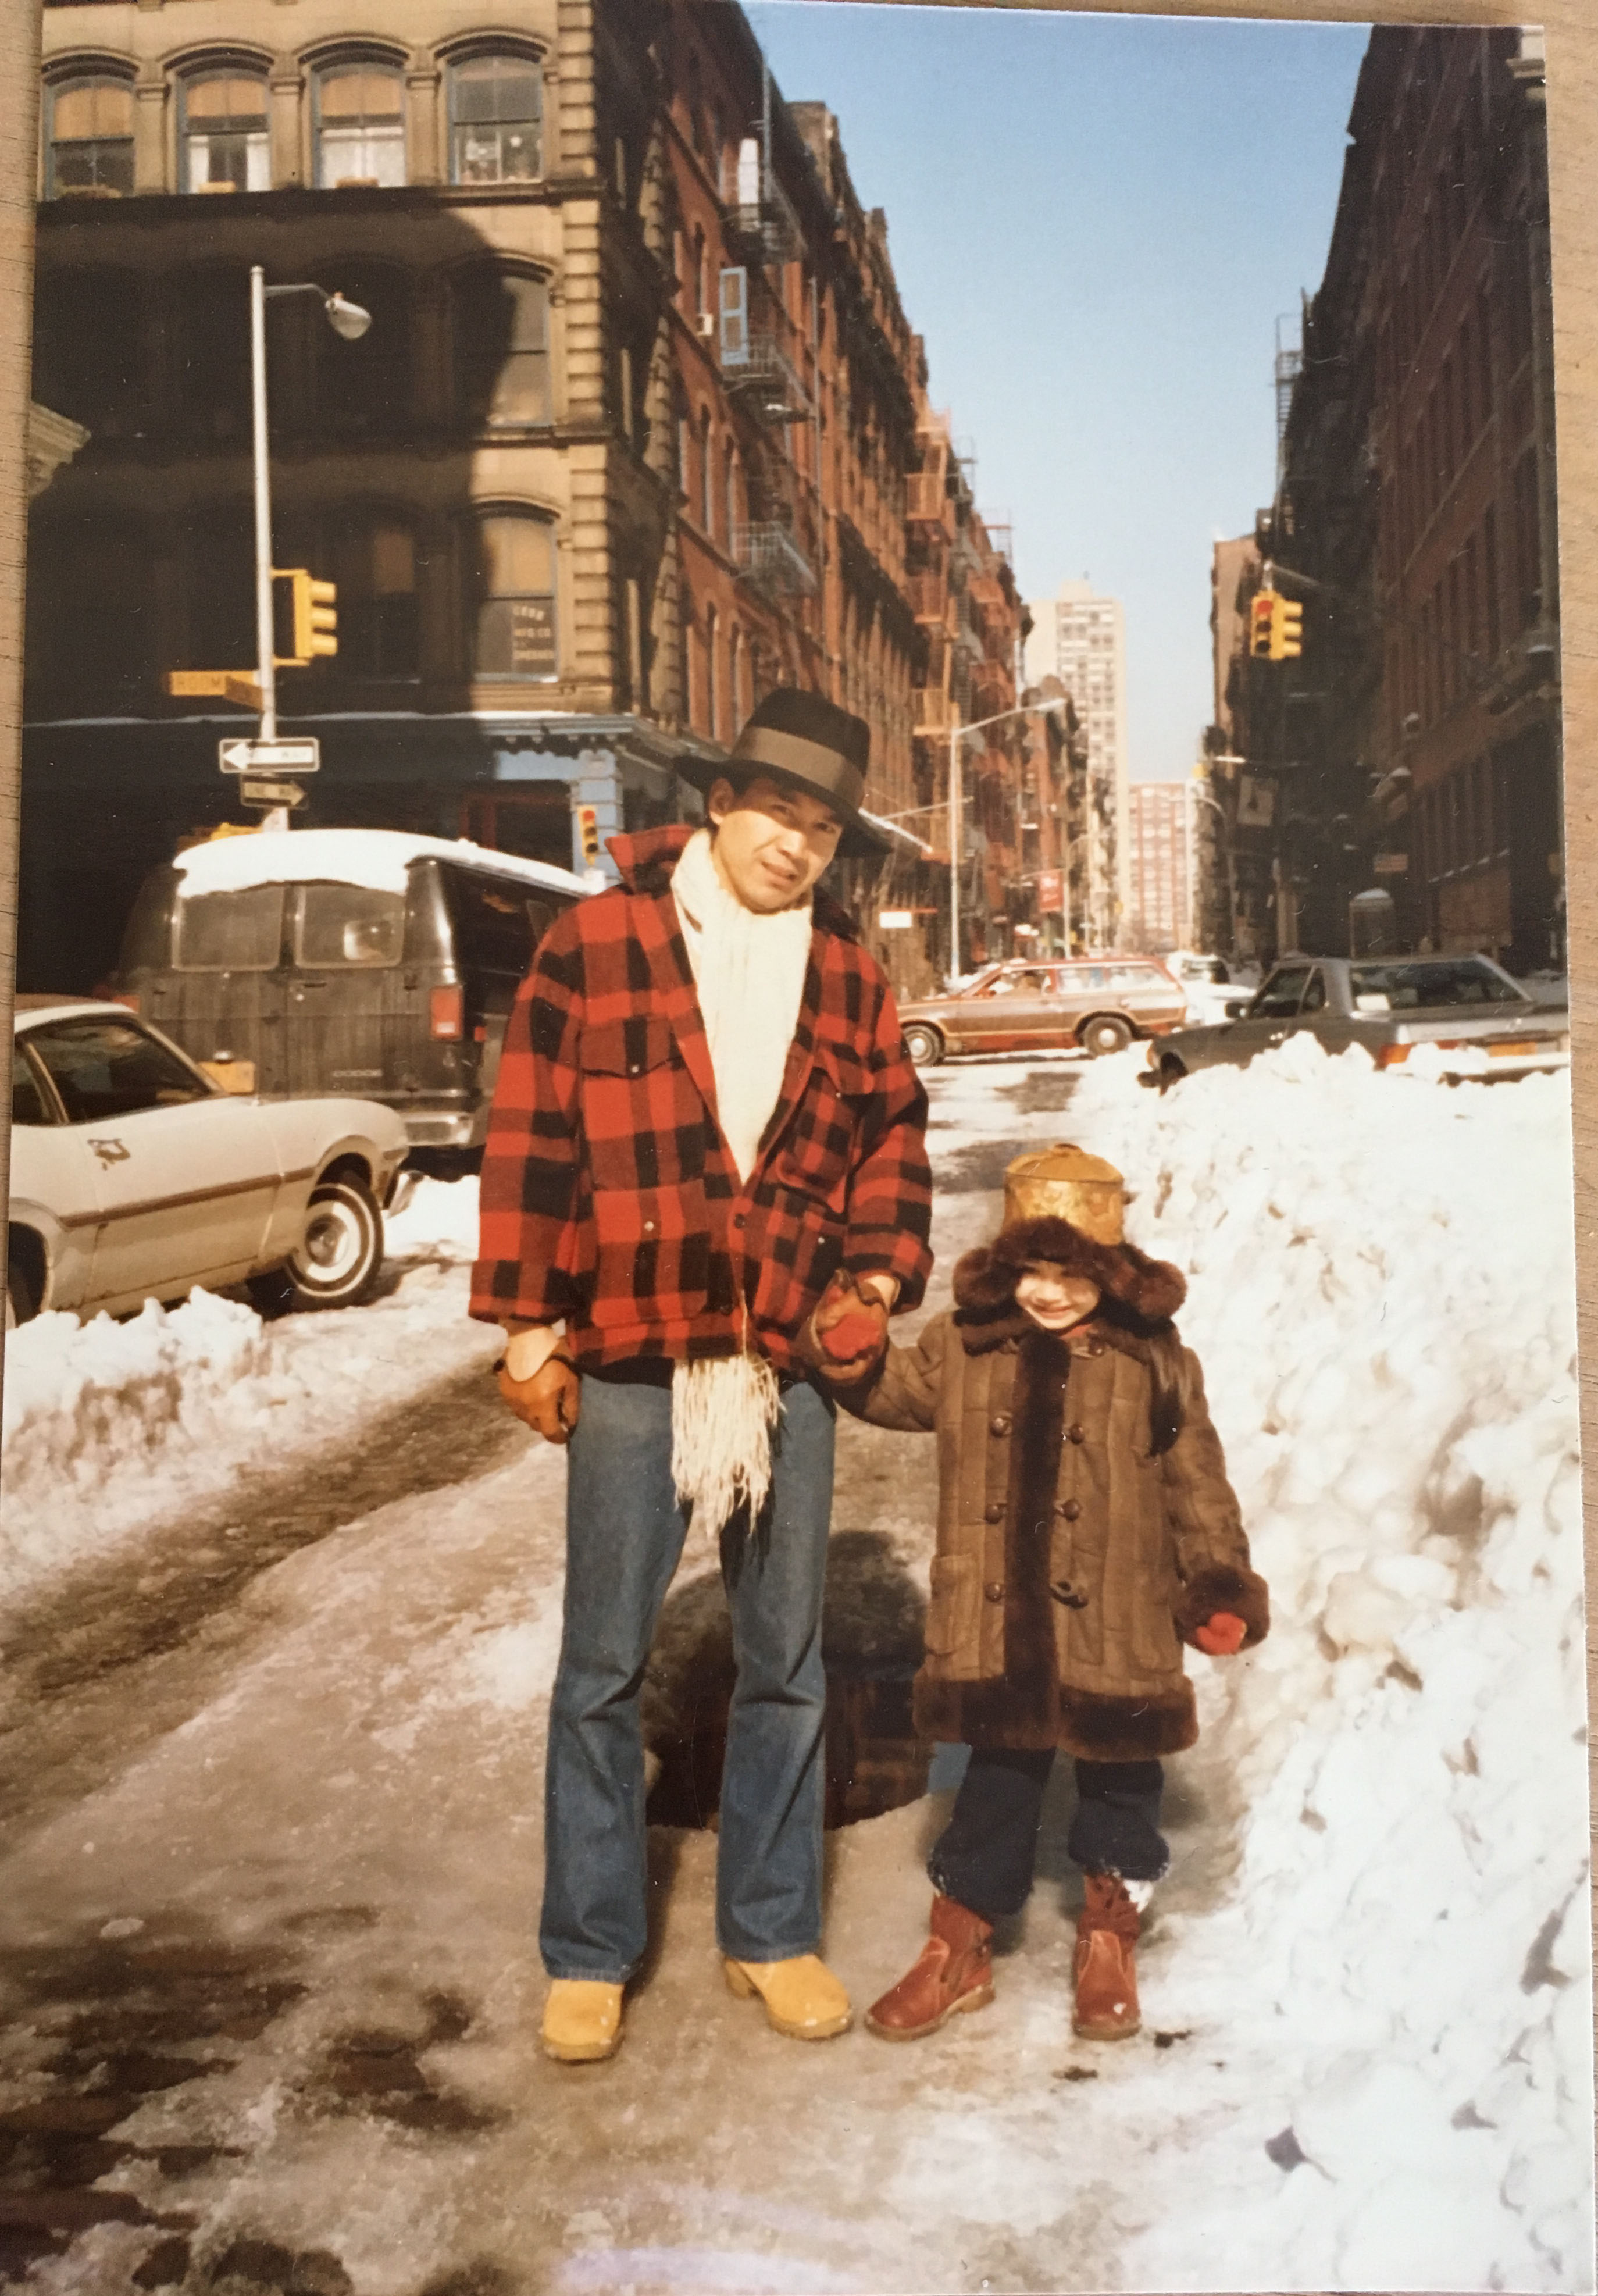 My father (Tohru Nakamura) and me (Hana Nakamura) on Greene and Broome, in about 1983(?).